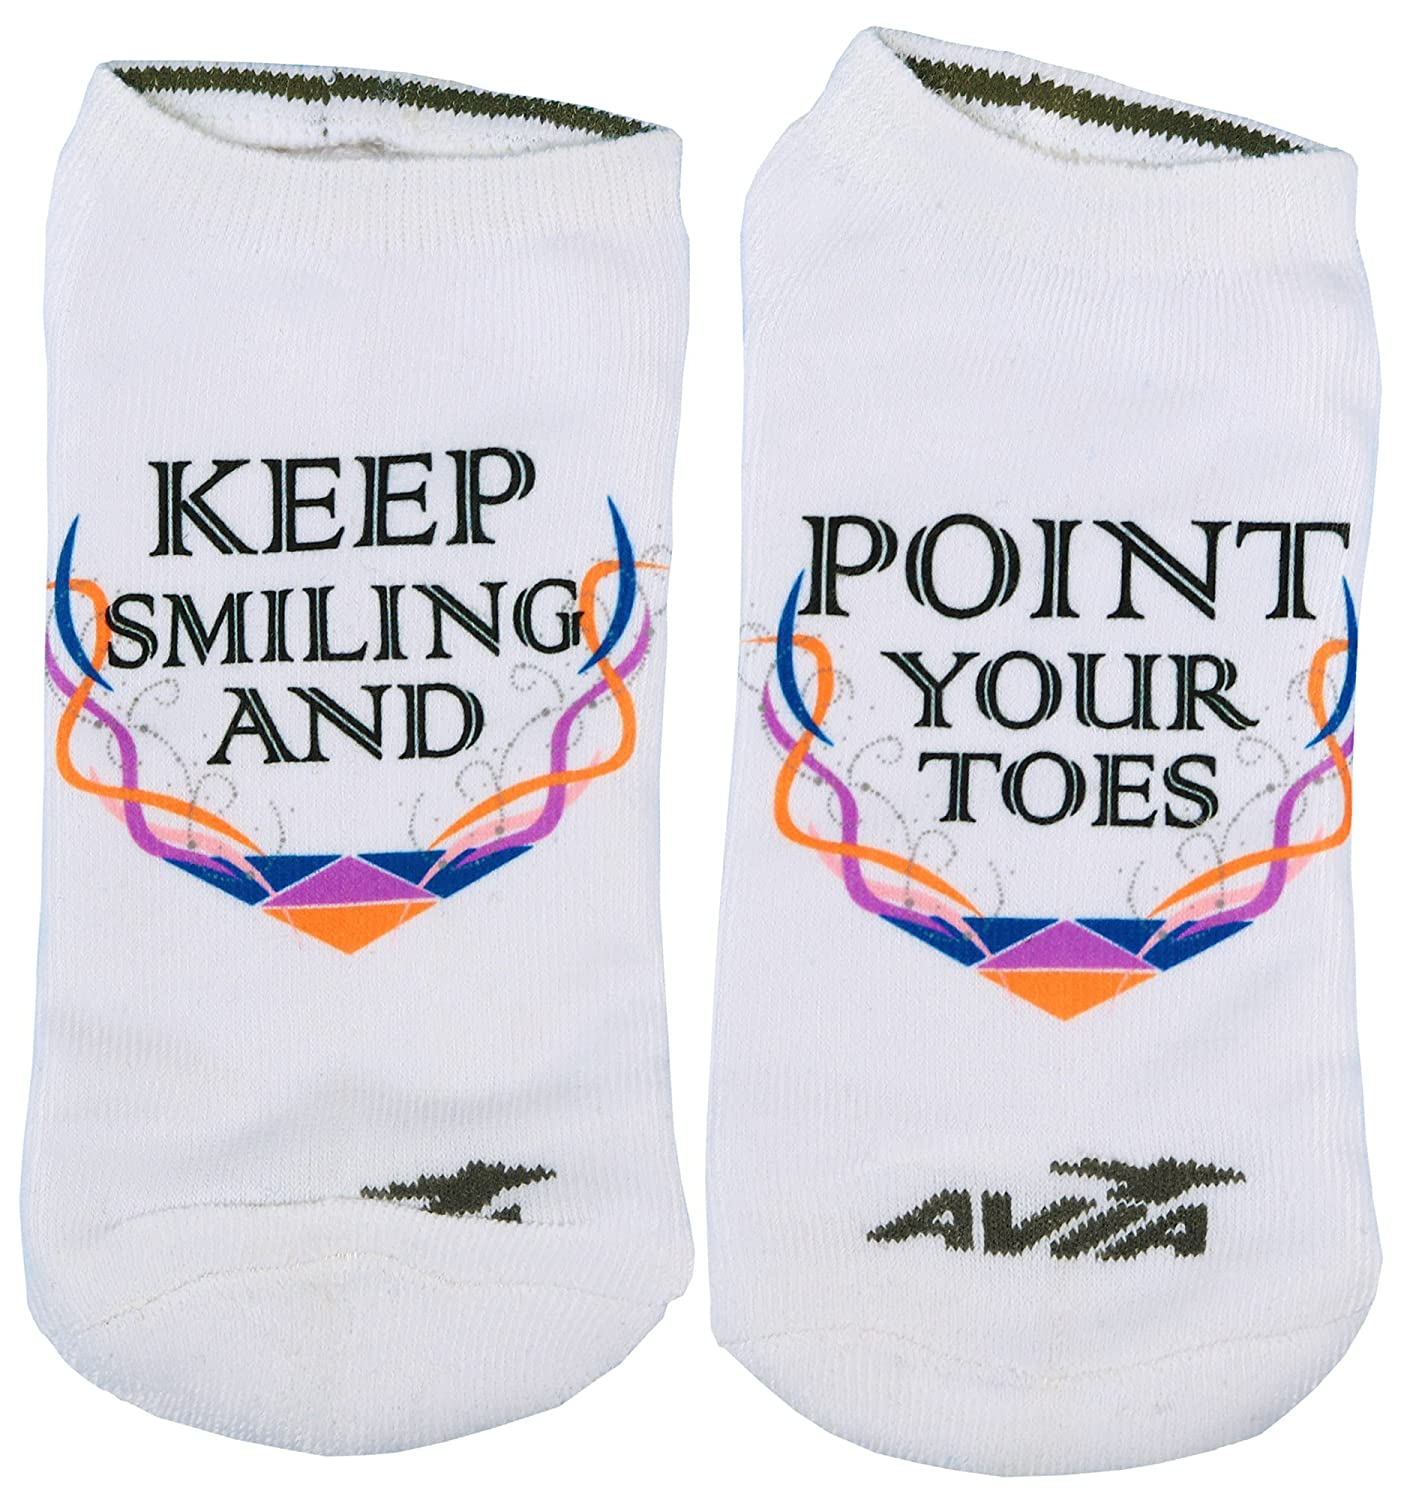 Snowflake Designs Gymnastics Printed Socks Many Styles Available 02socksfiery